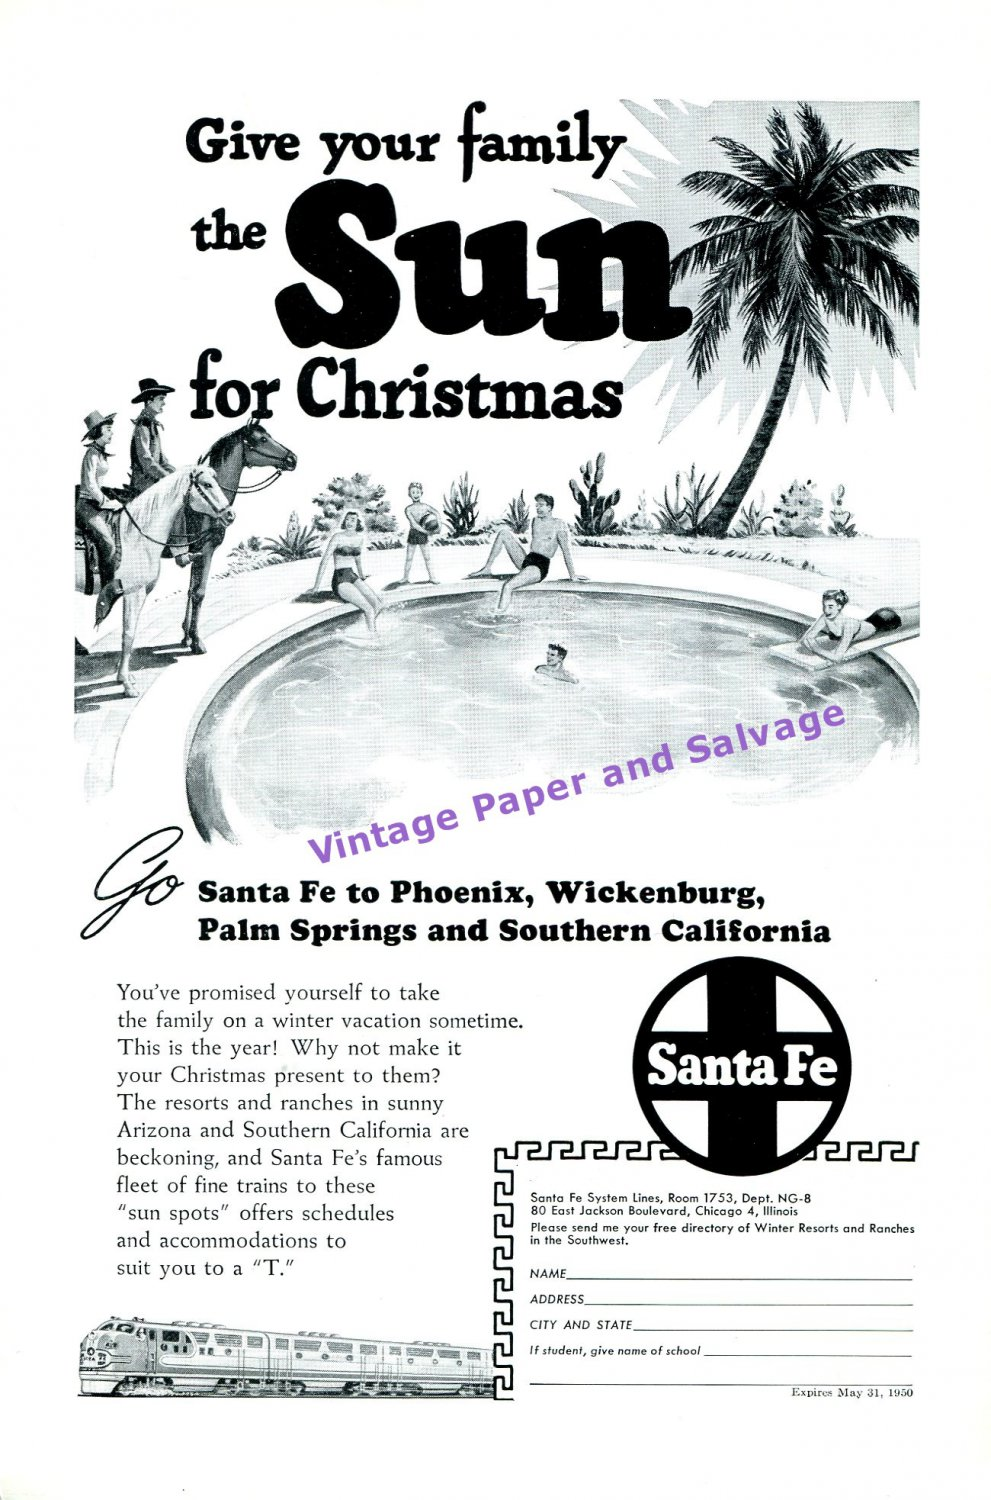 1949 Santa Fe Train Line Give Your Family the Sun for Christmas Railroad 1940s Print Ad